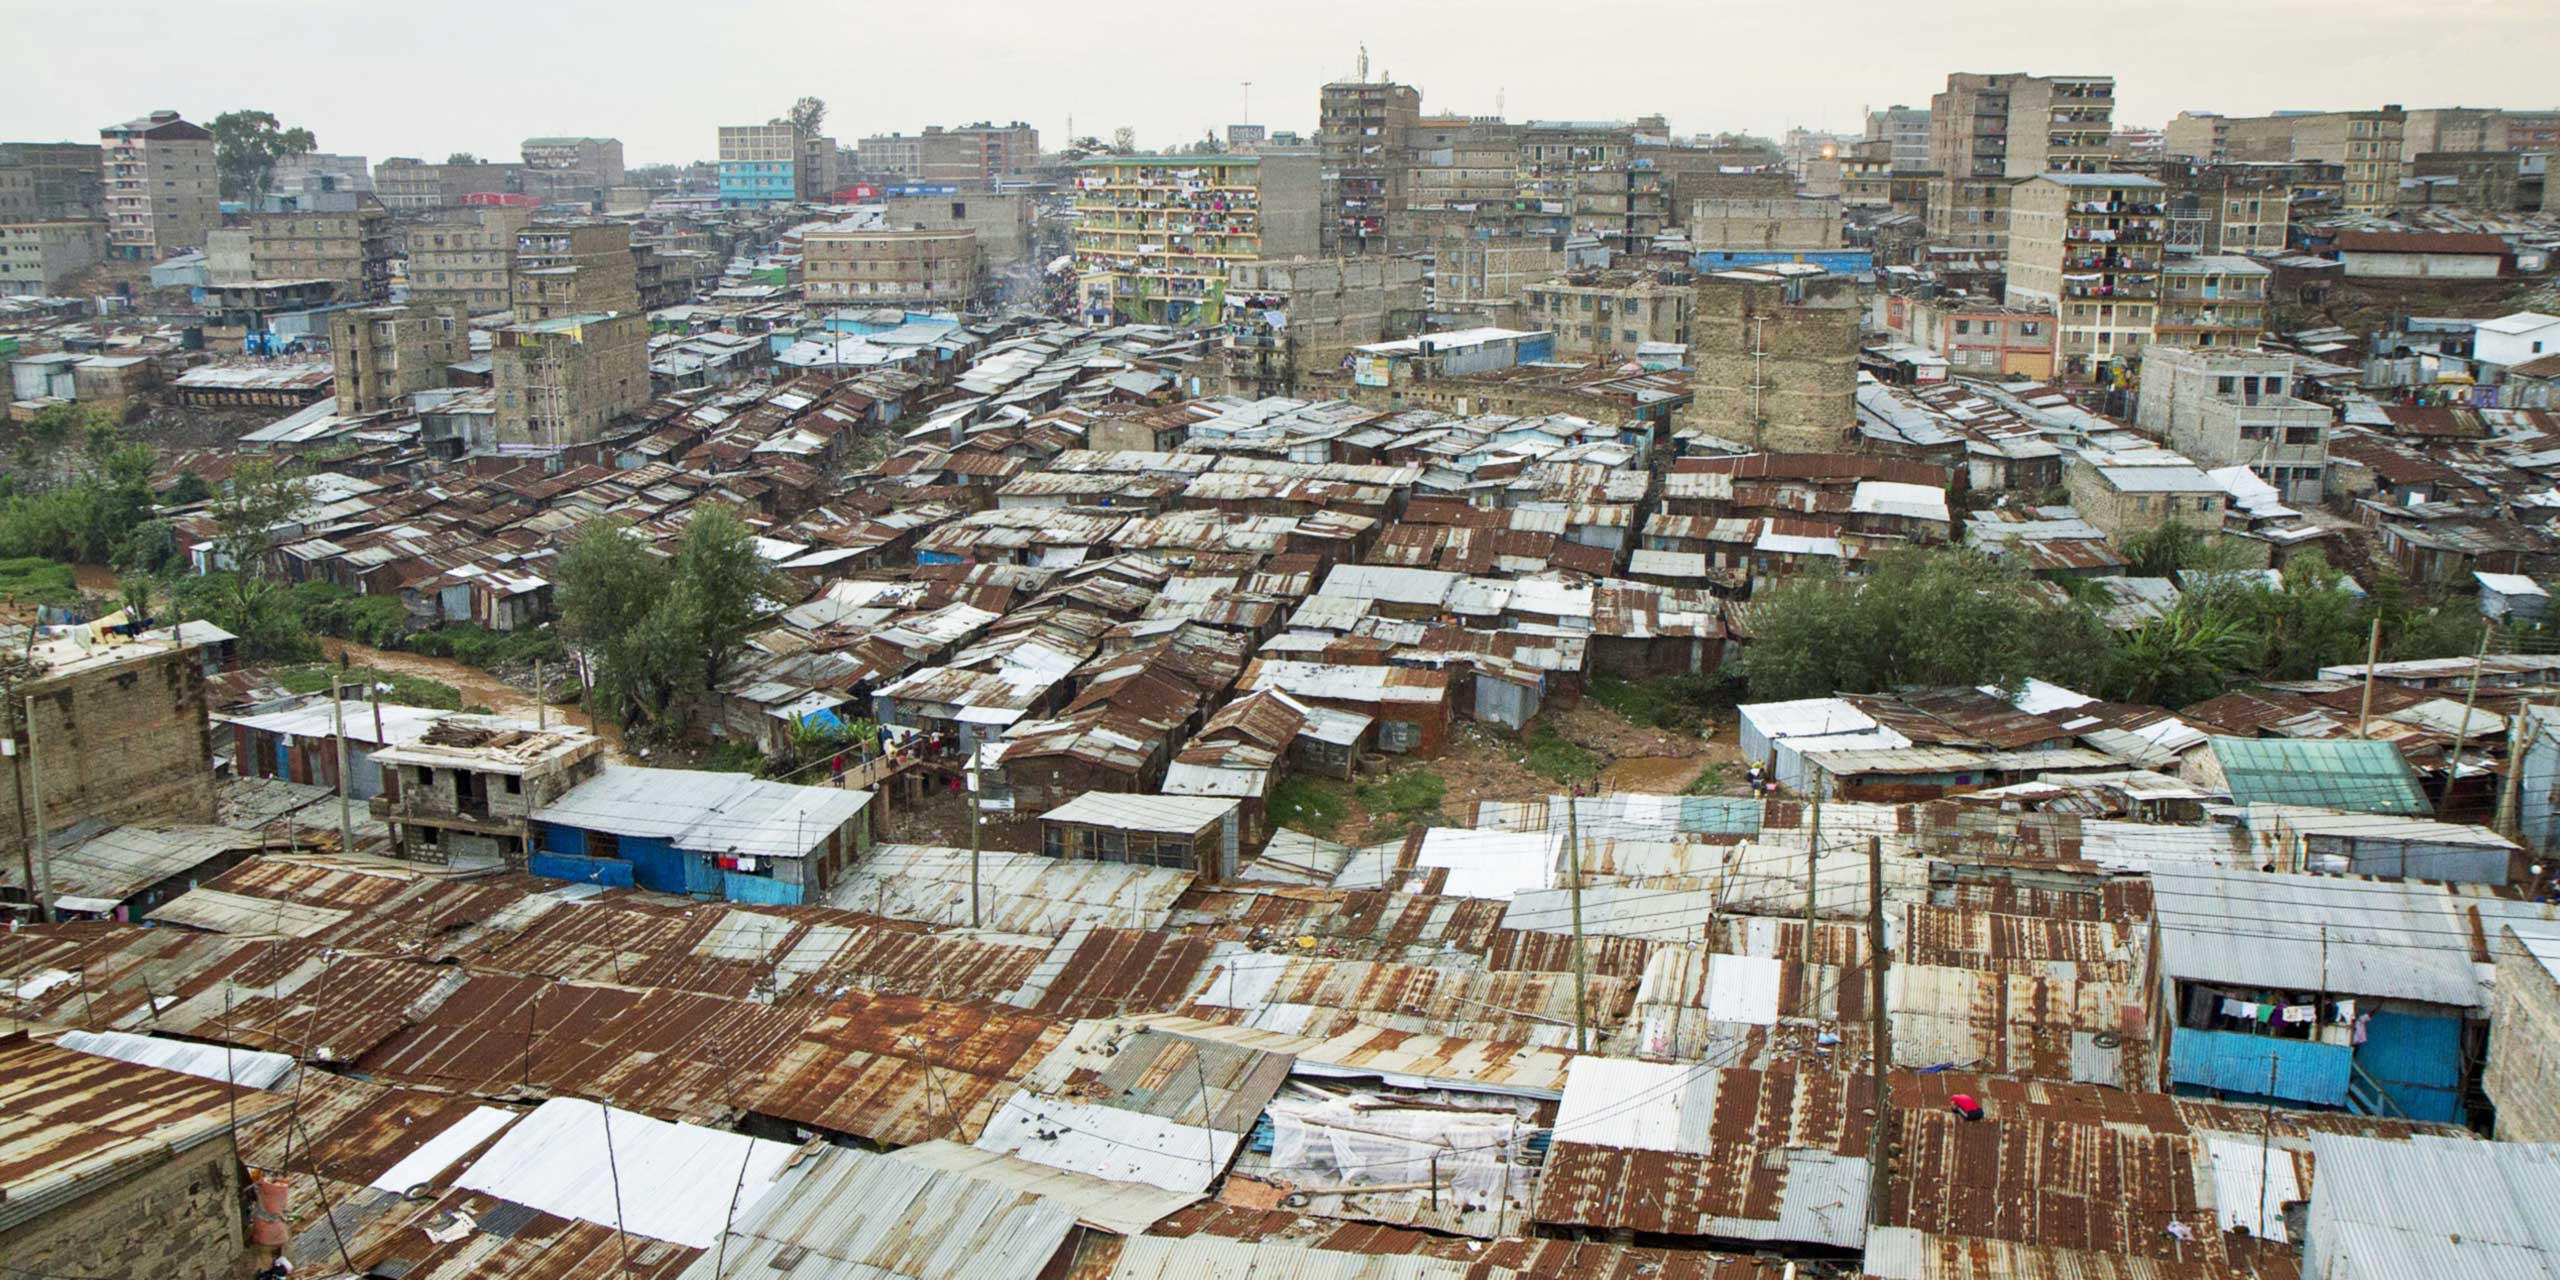 http://s12982.pcdn.co/wp-content/uploads/2015/01/slum-dwellers-international-sl1.jpg